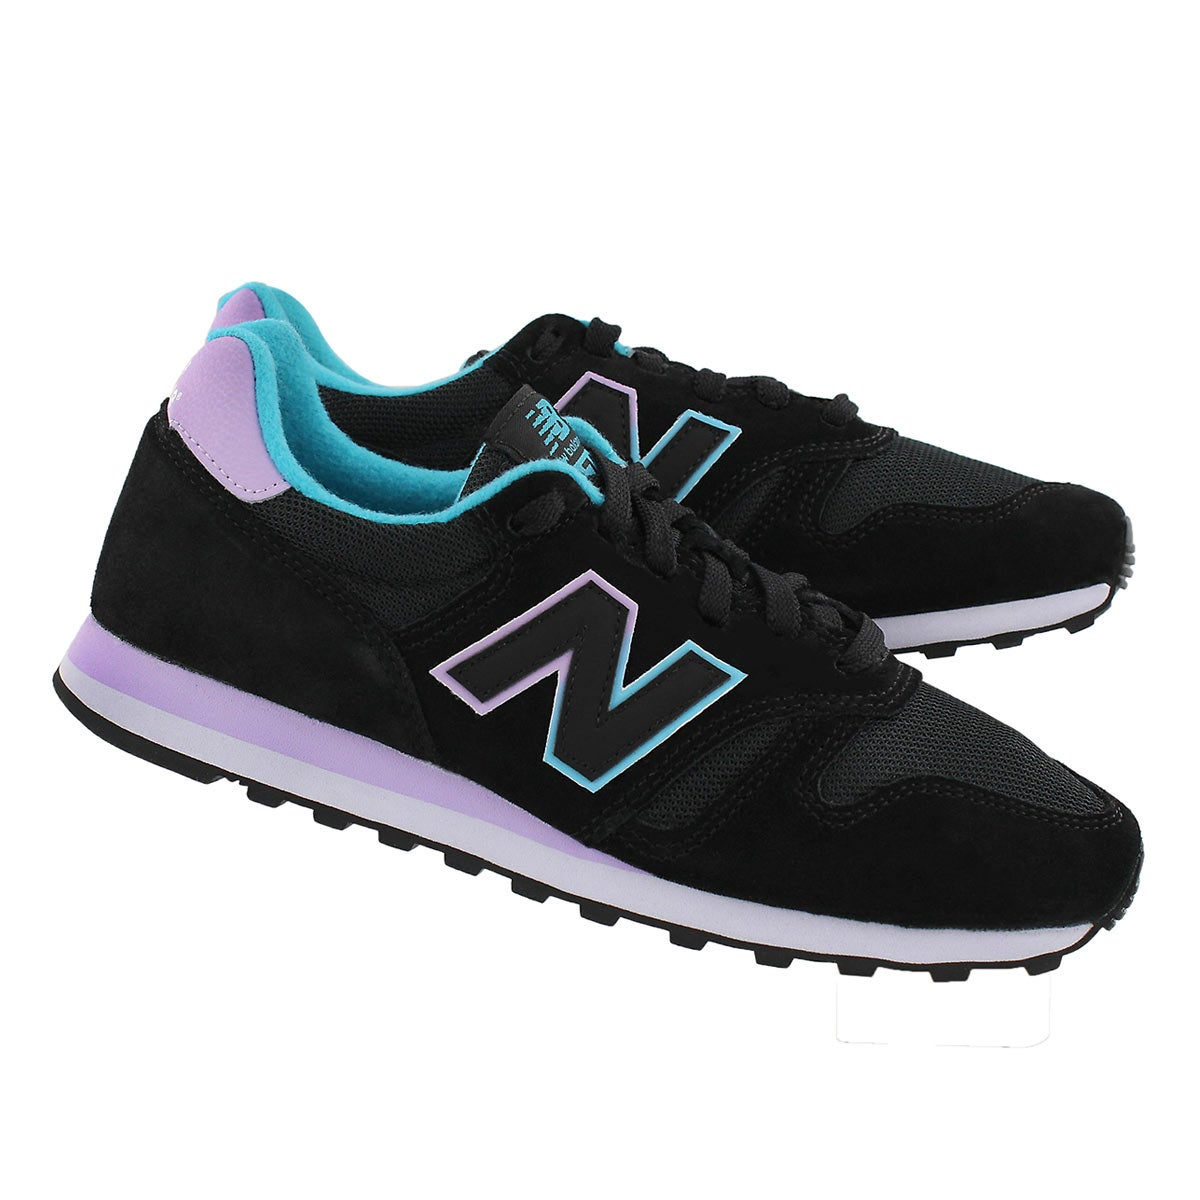 Lds 373 black/lilac lace up running shoe